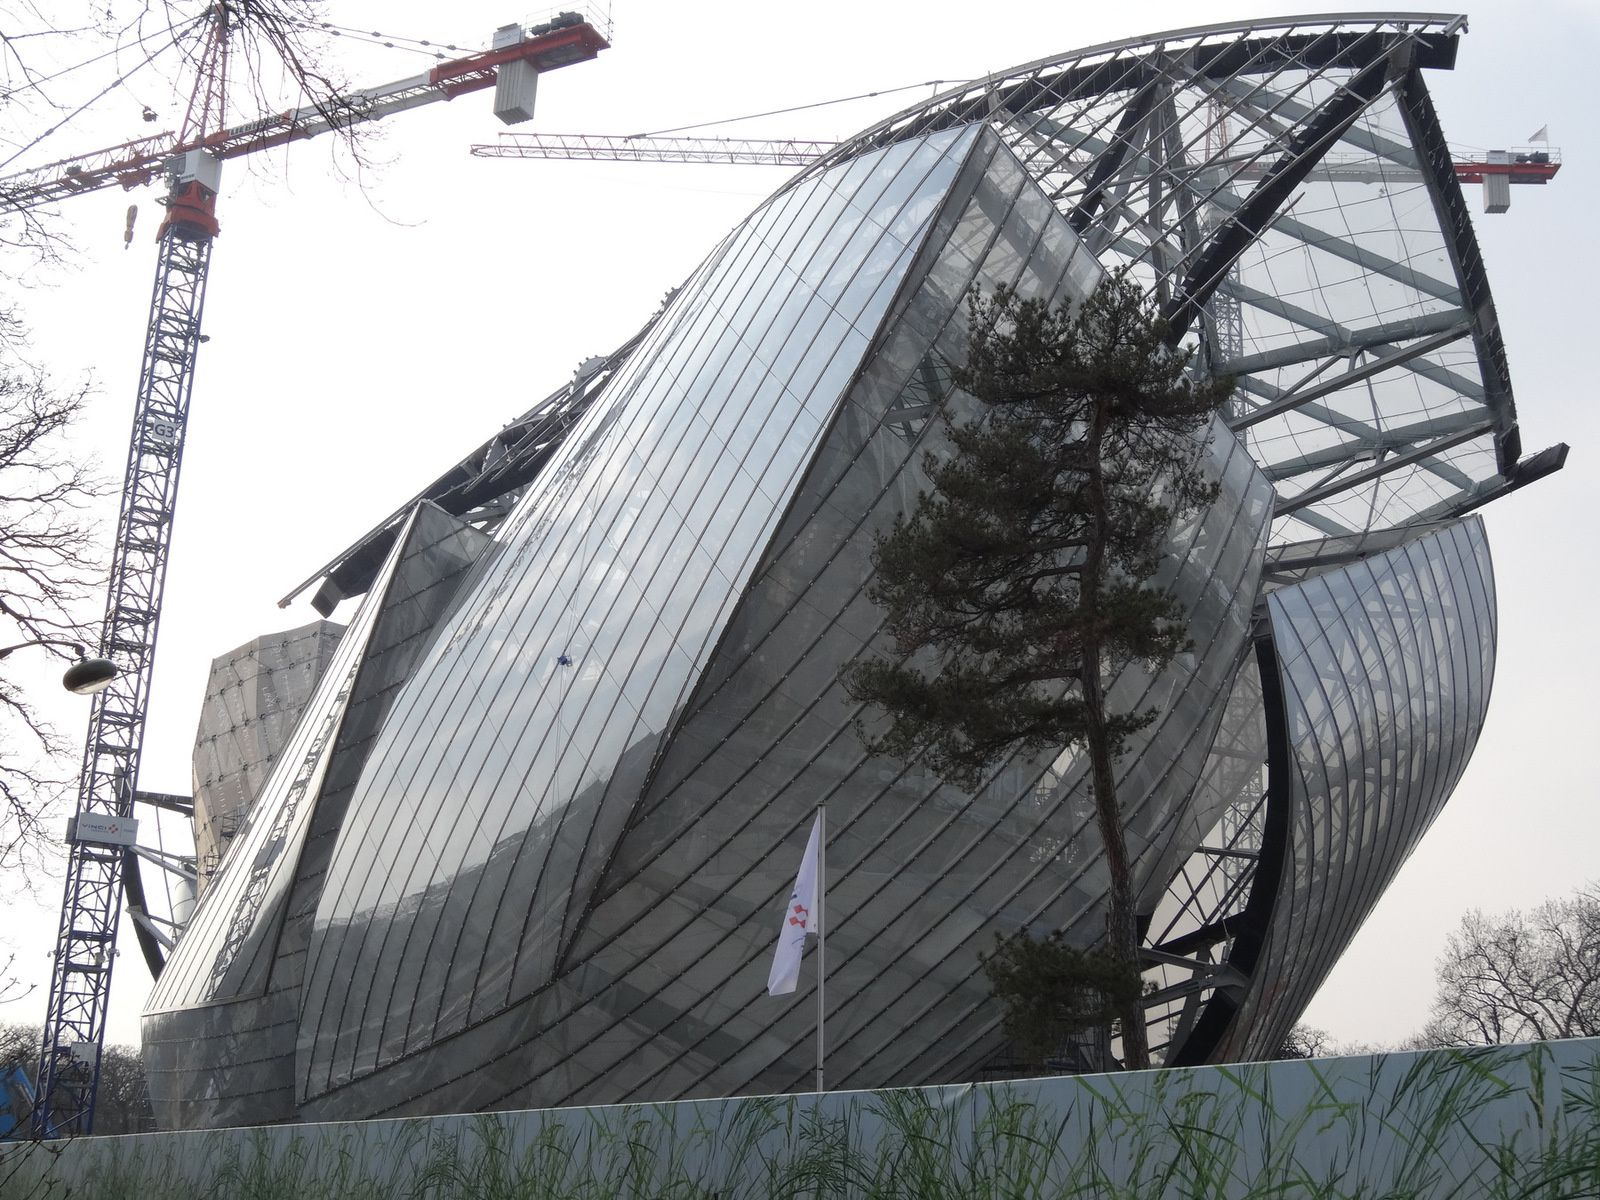 La Fondation Vuitton de Frank Gehry à Paris - sa construction en 9 images